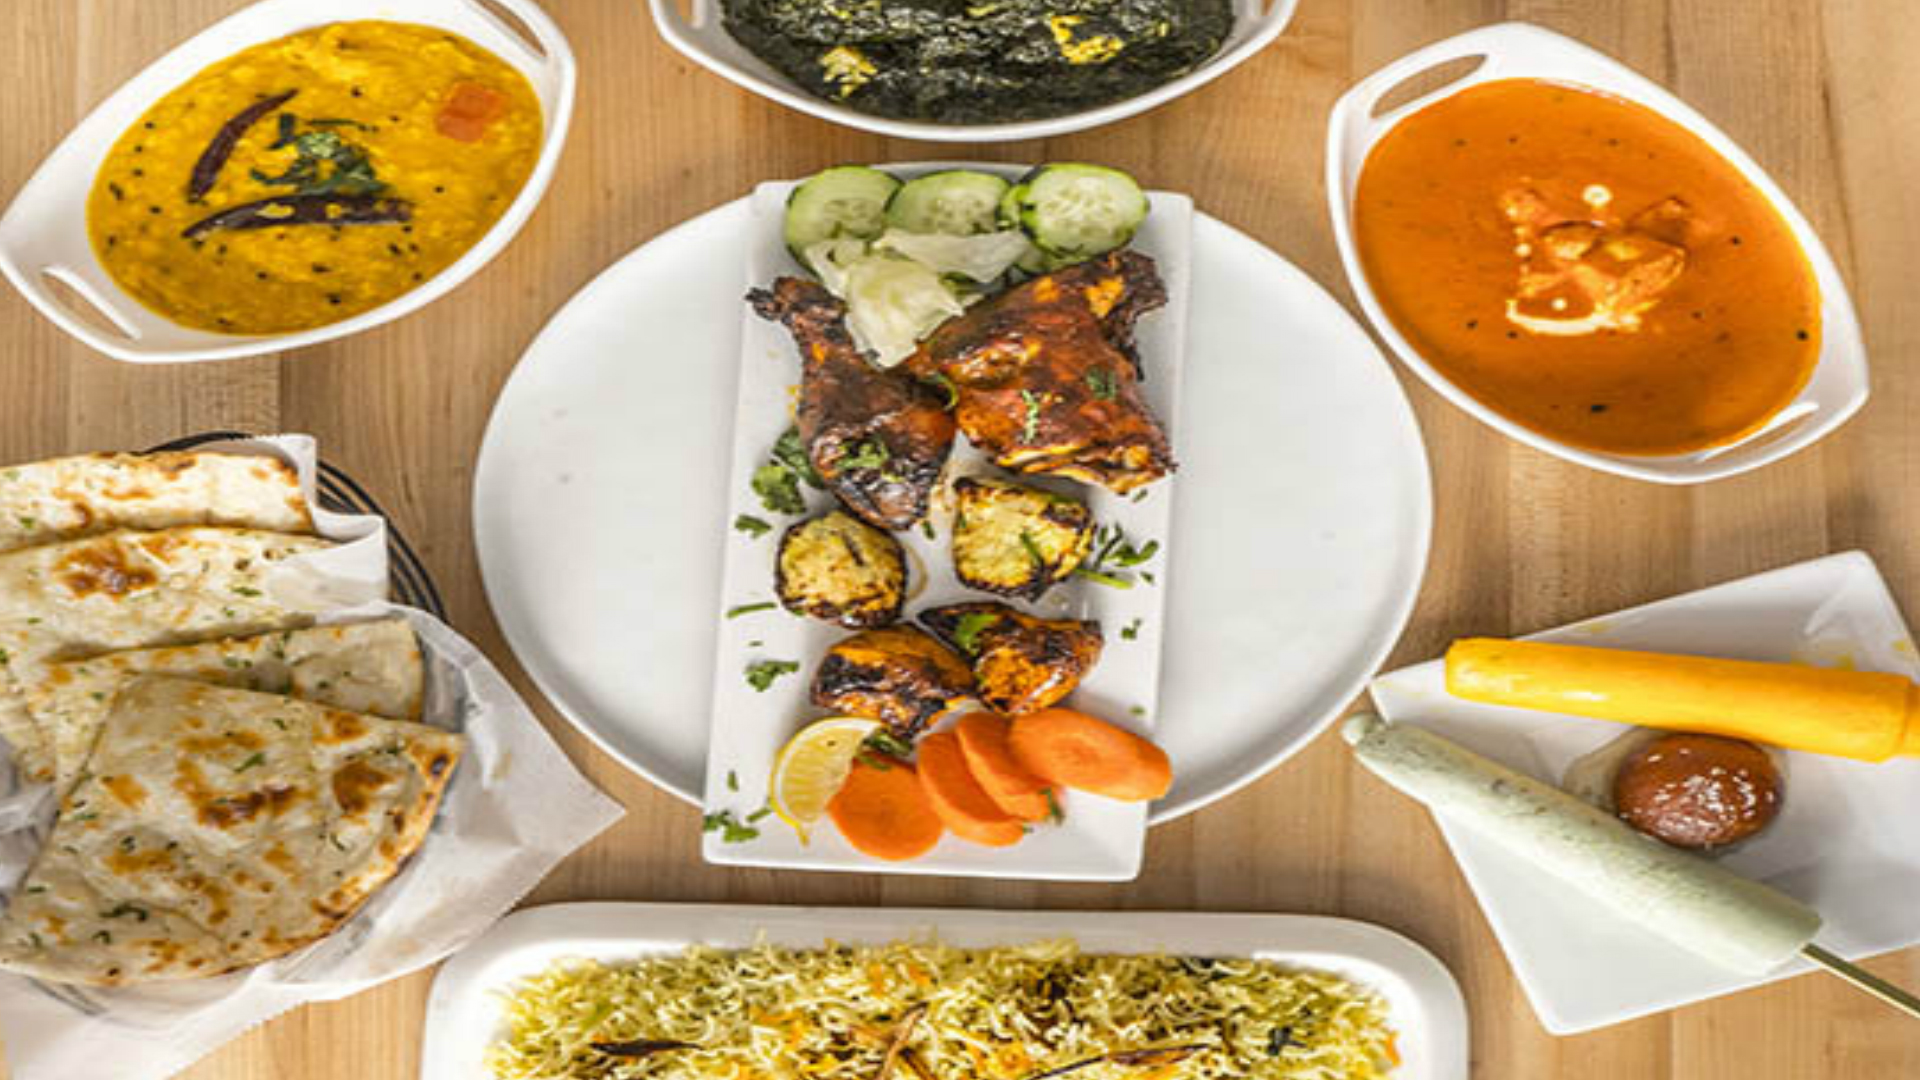 Authentic Indian Restaurant The Spice Room Chicago Top Rated